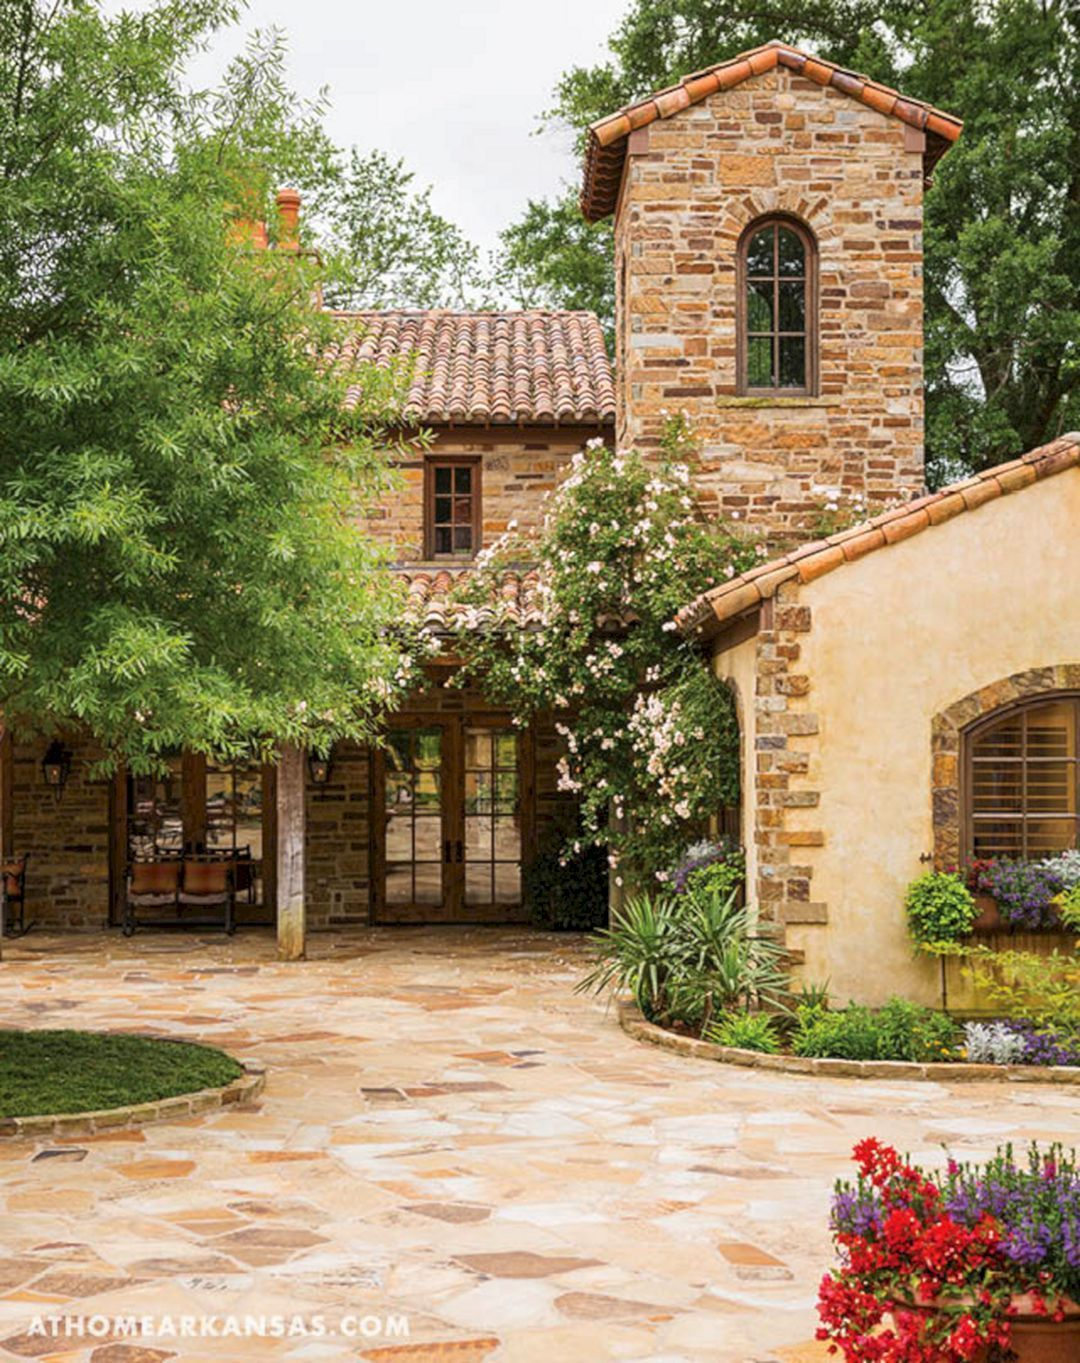 Italian Farmhouse Style Homes